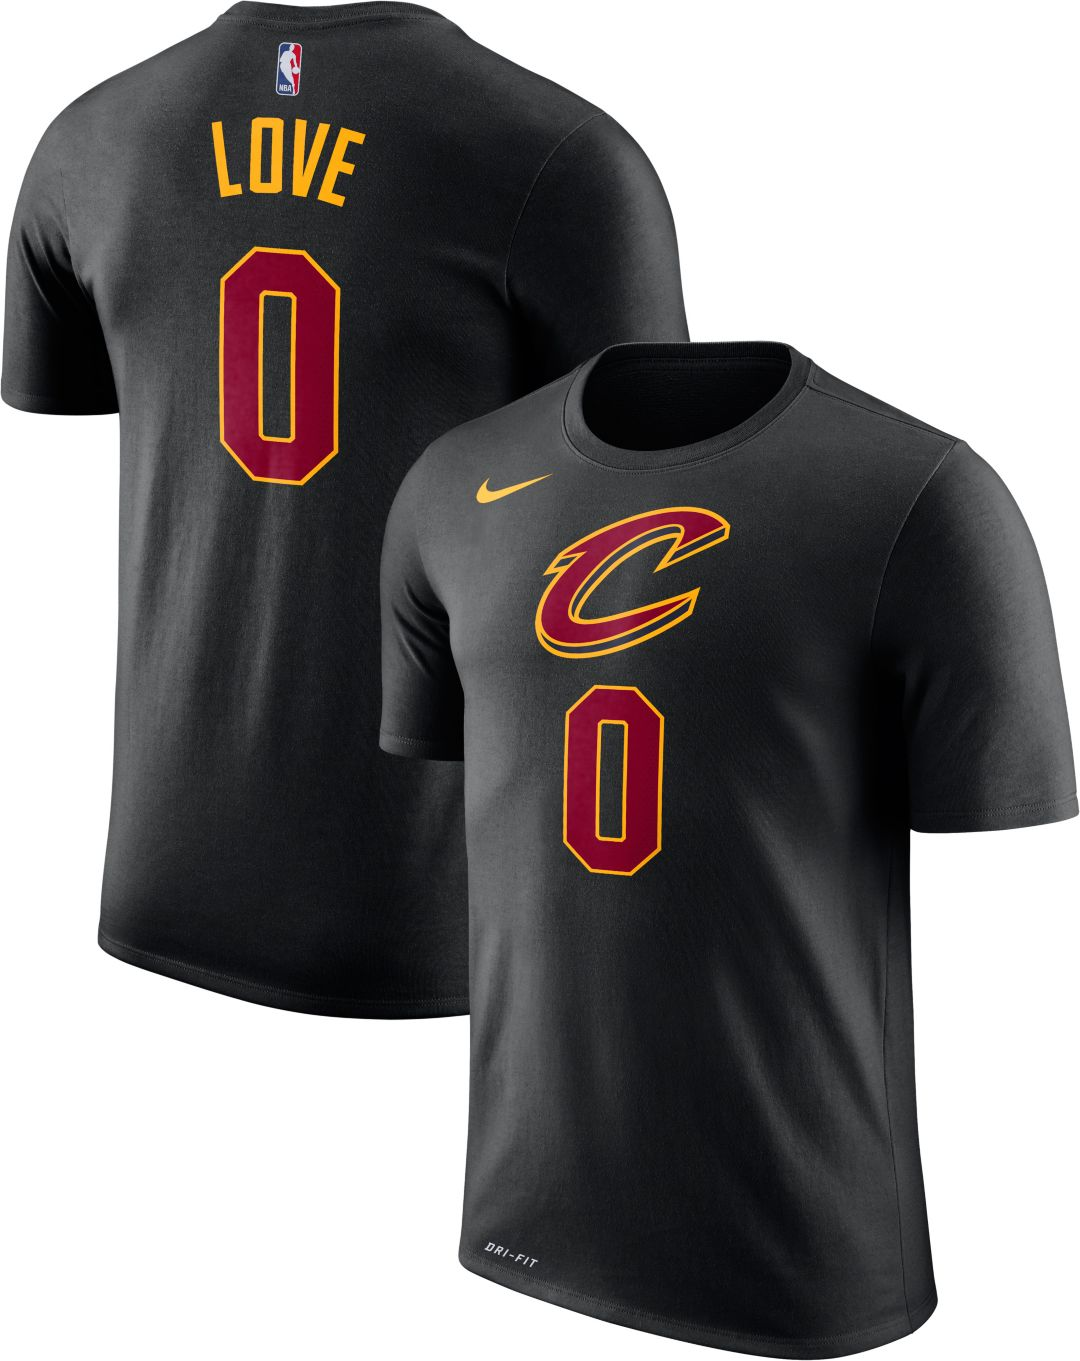 babac97bf58 Nike Youth Cleveland Cavaliers Kevin Love #0 Dri-FIT Black T-Shirt ...